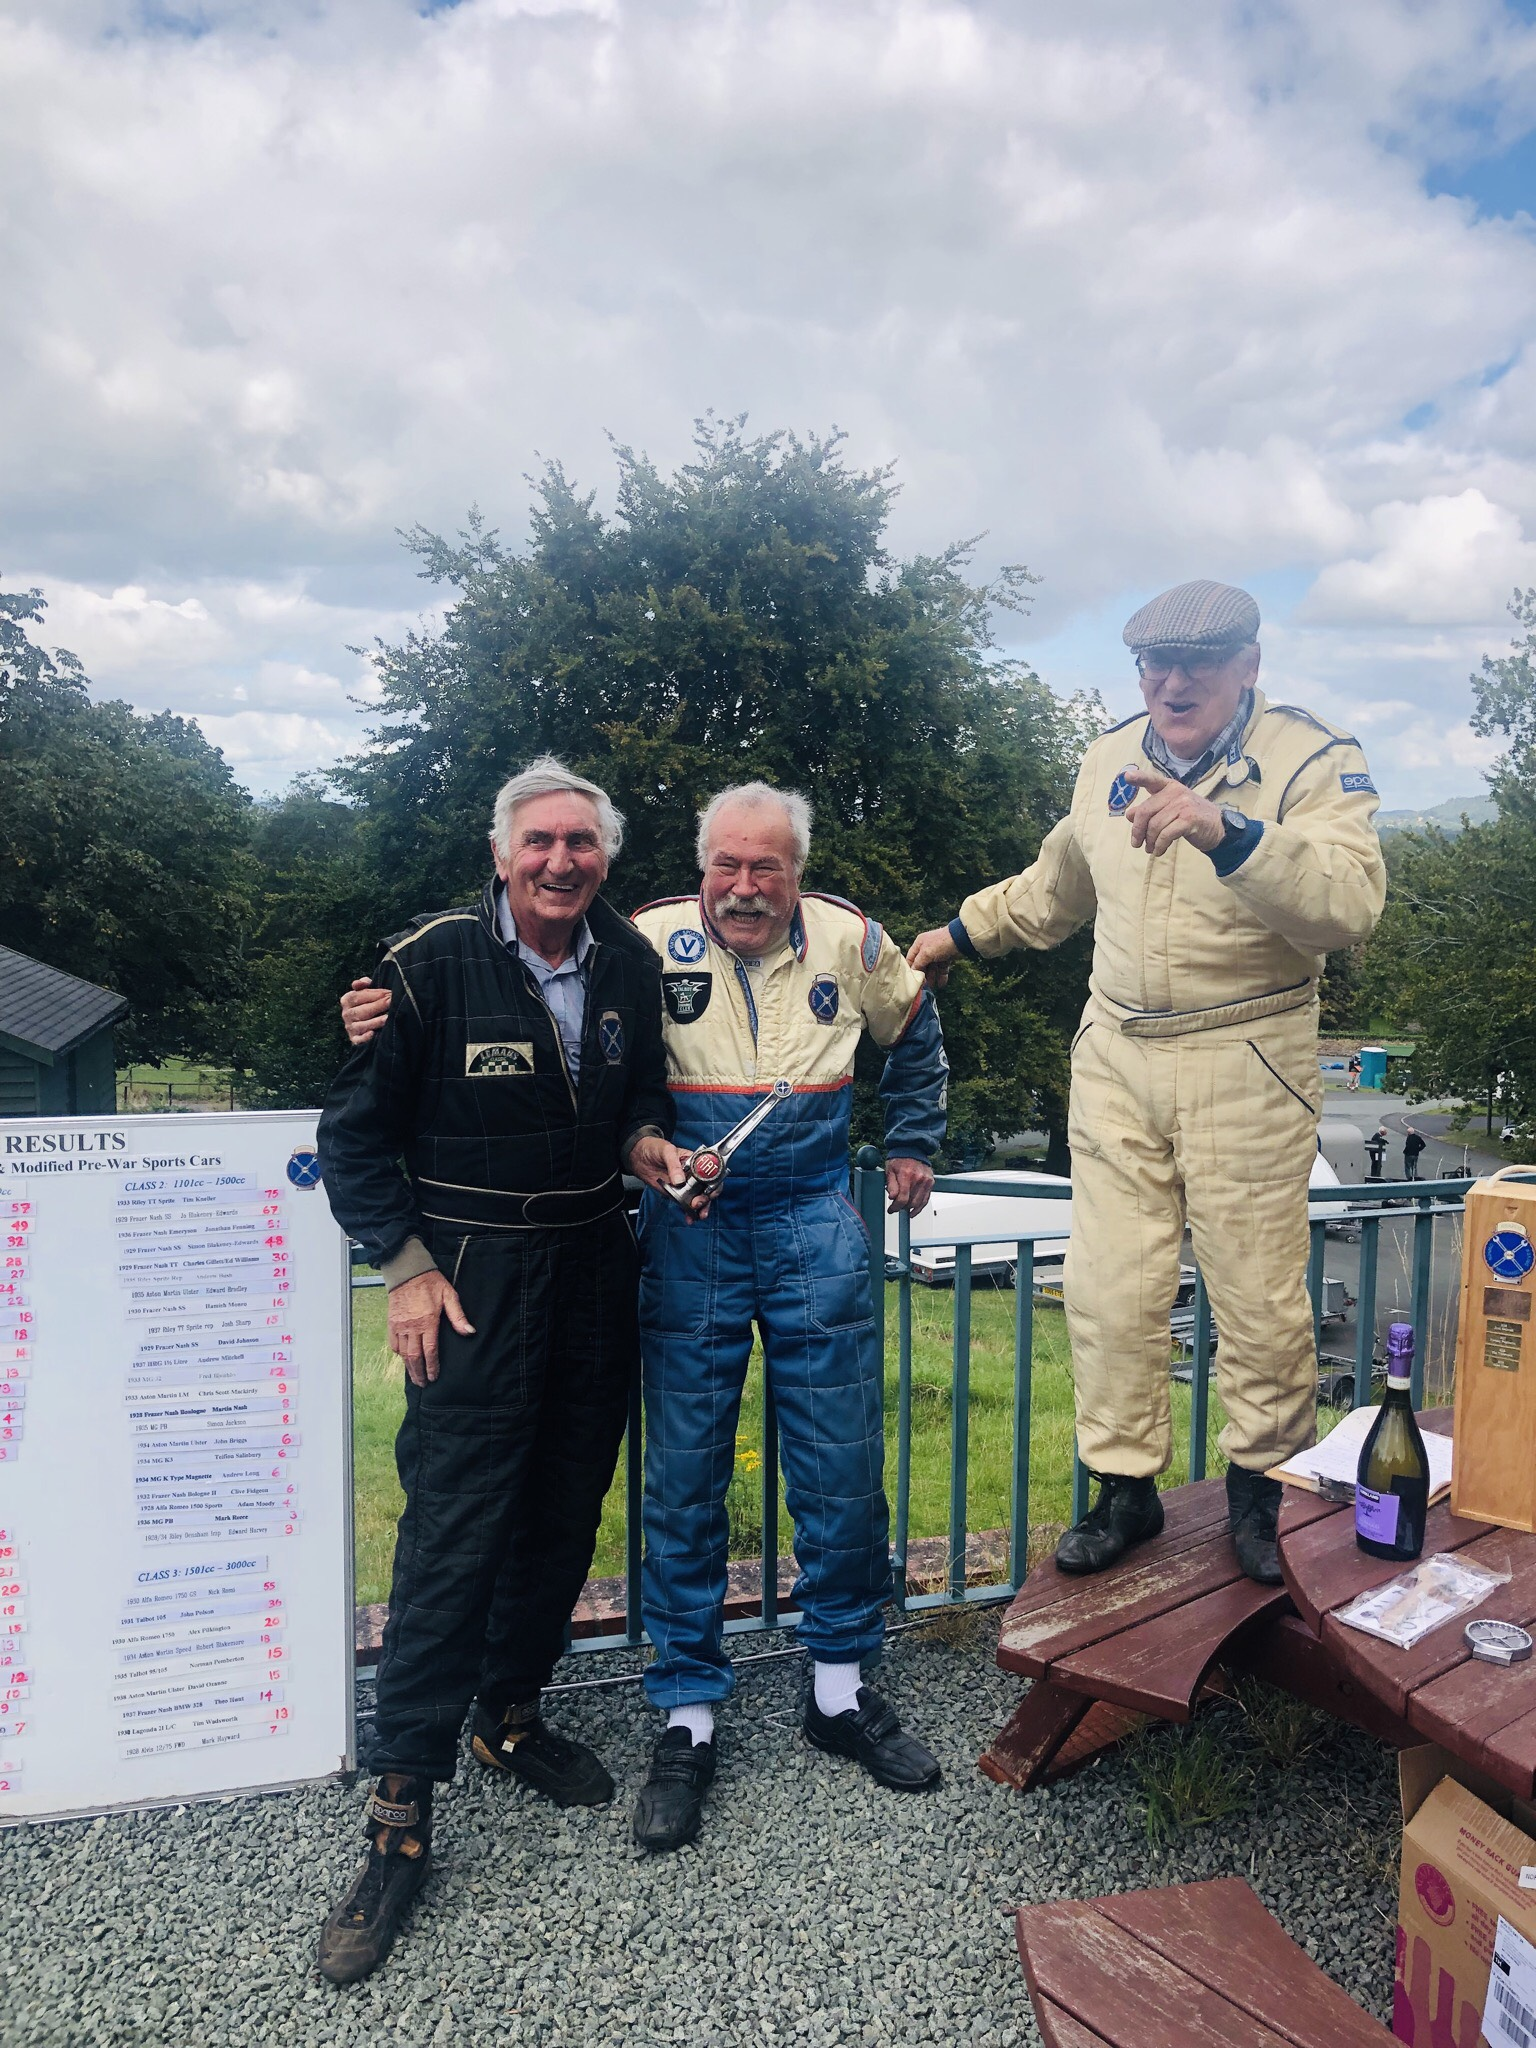 Allen received his Golden Oldie Award from Norman Pemberton at Loton Park; Le Patron presiding: Andy Baker